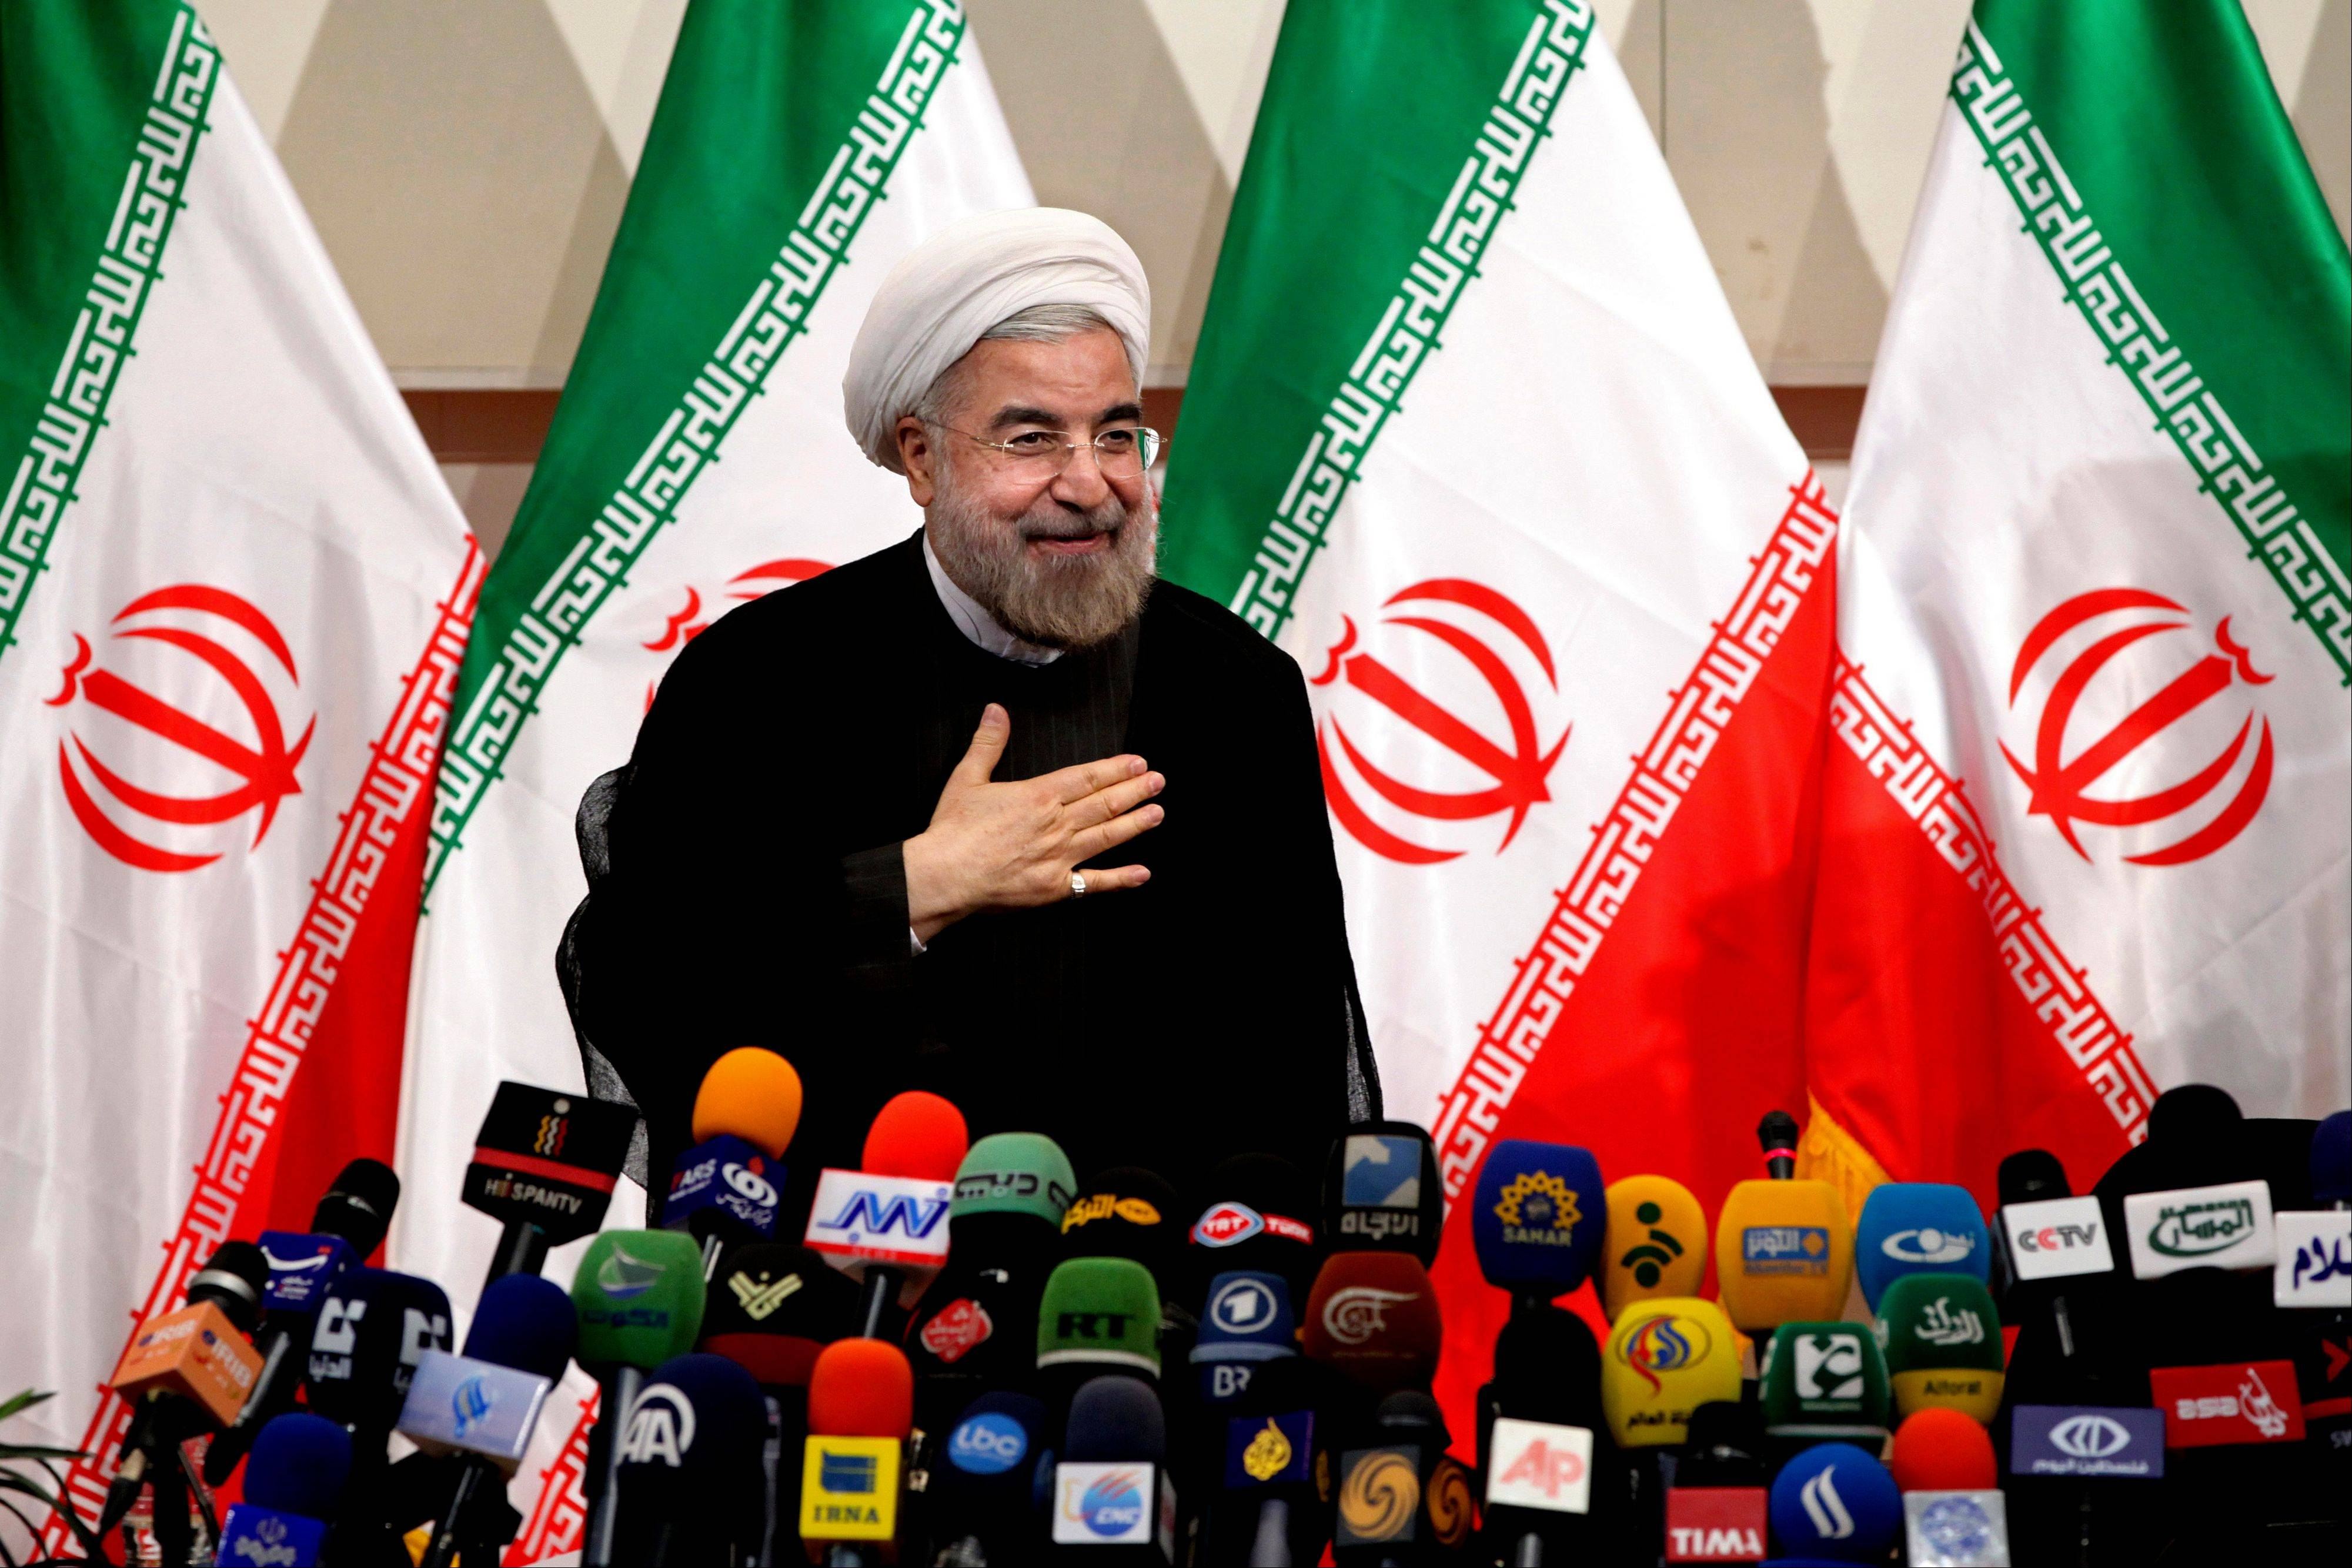 Iranian President-elect Hasan Rouhani, places his hand on his heart as a sign of respect, after speaking at a news conference, in Tehran, Iran. Rouhani on Monday leveled his first criticism of the outgoing administration since June�s election, saying it has mismanaged the country�s economy.